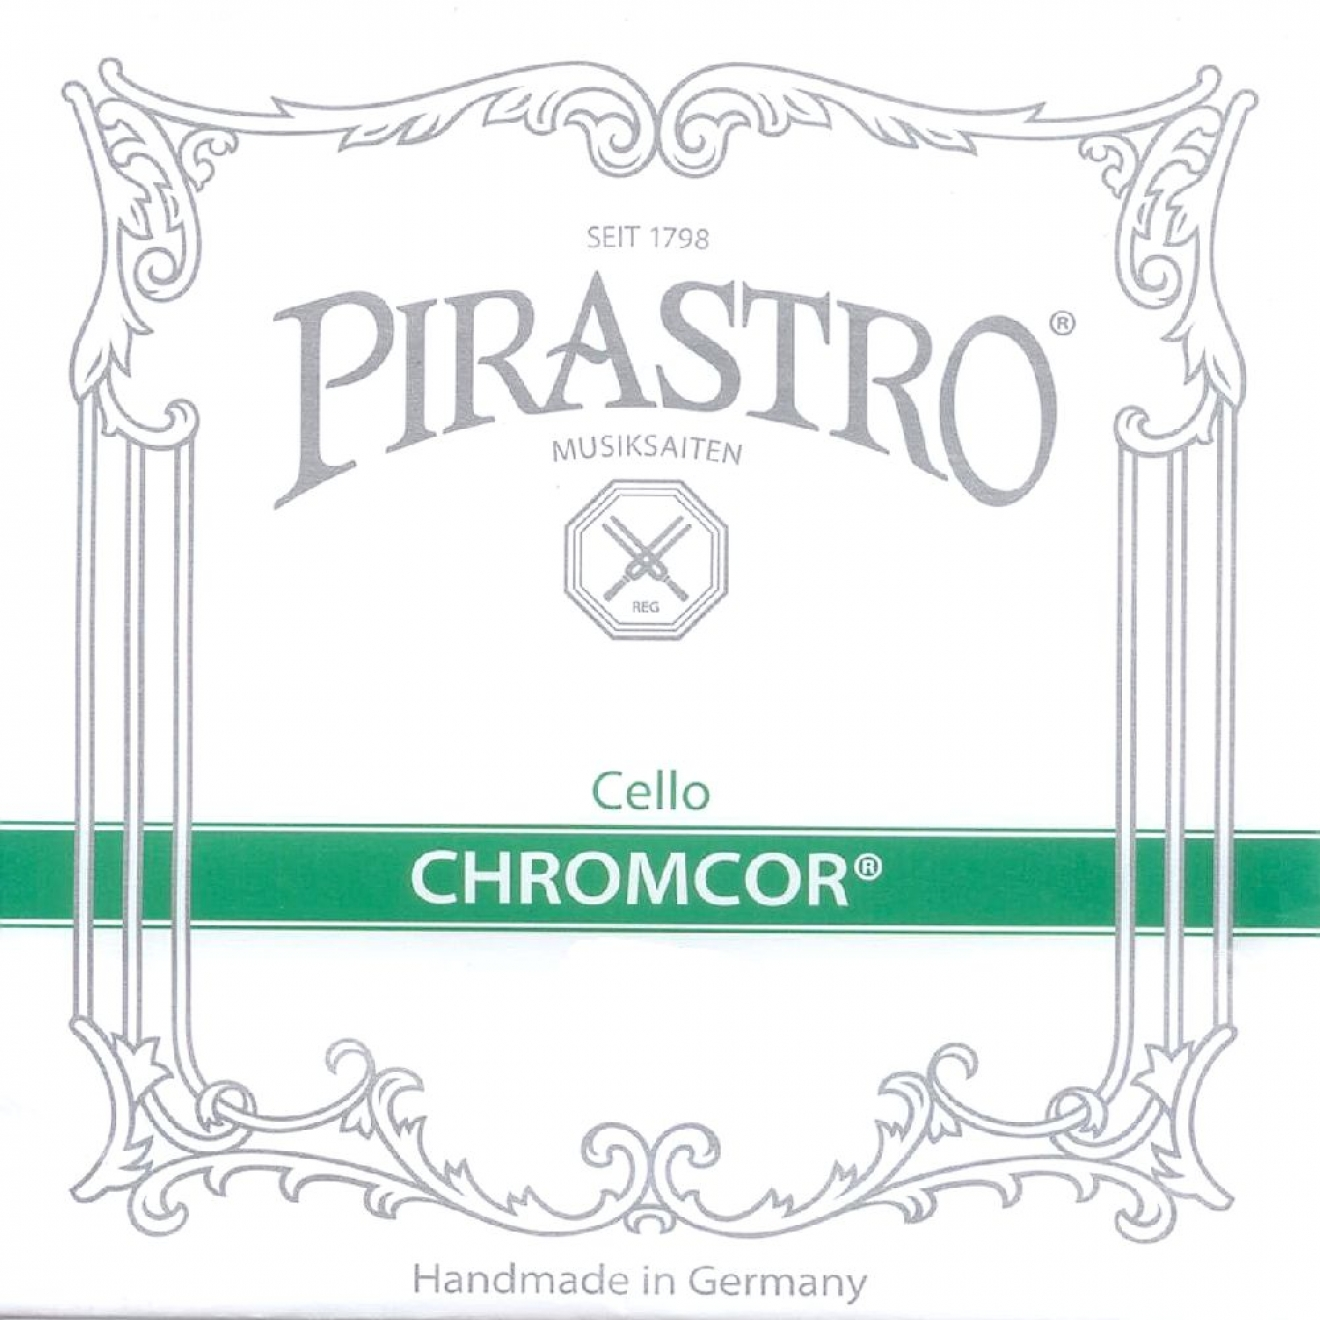 PIRASTRO Chromcor Cello D